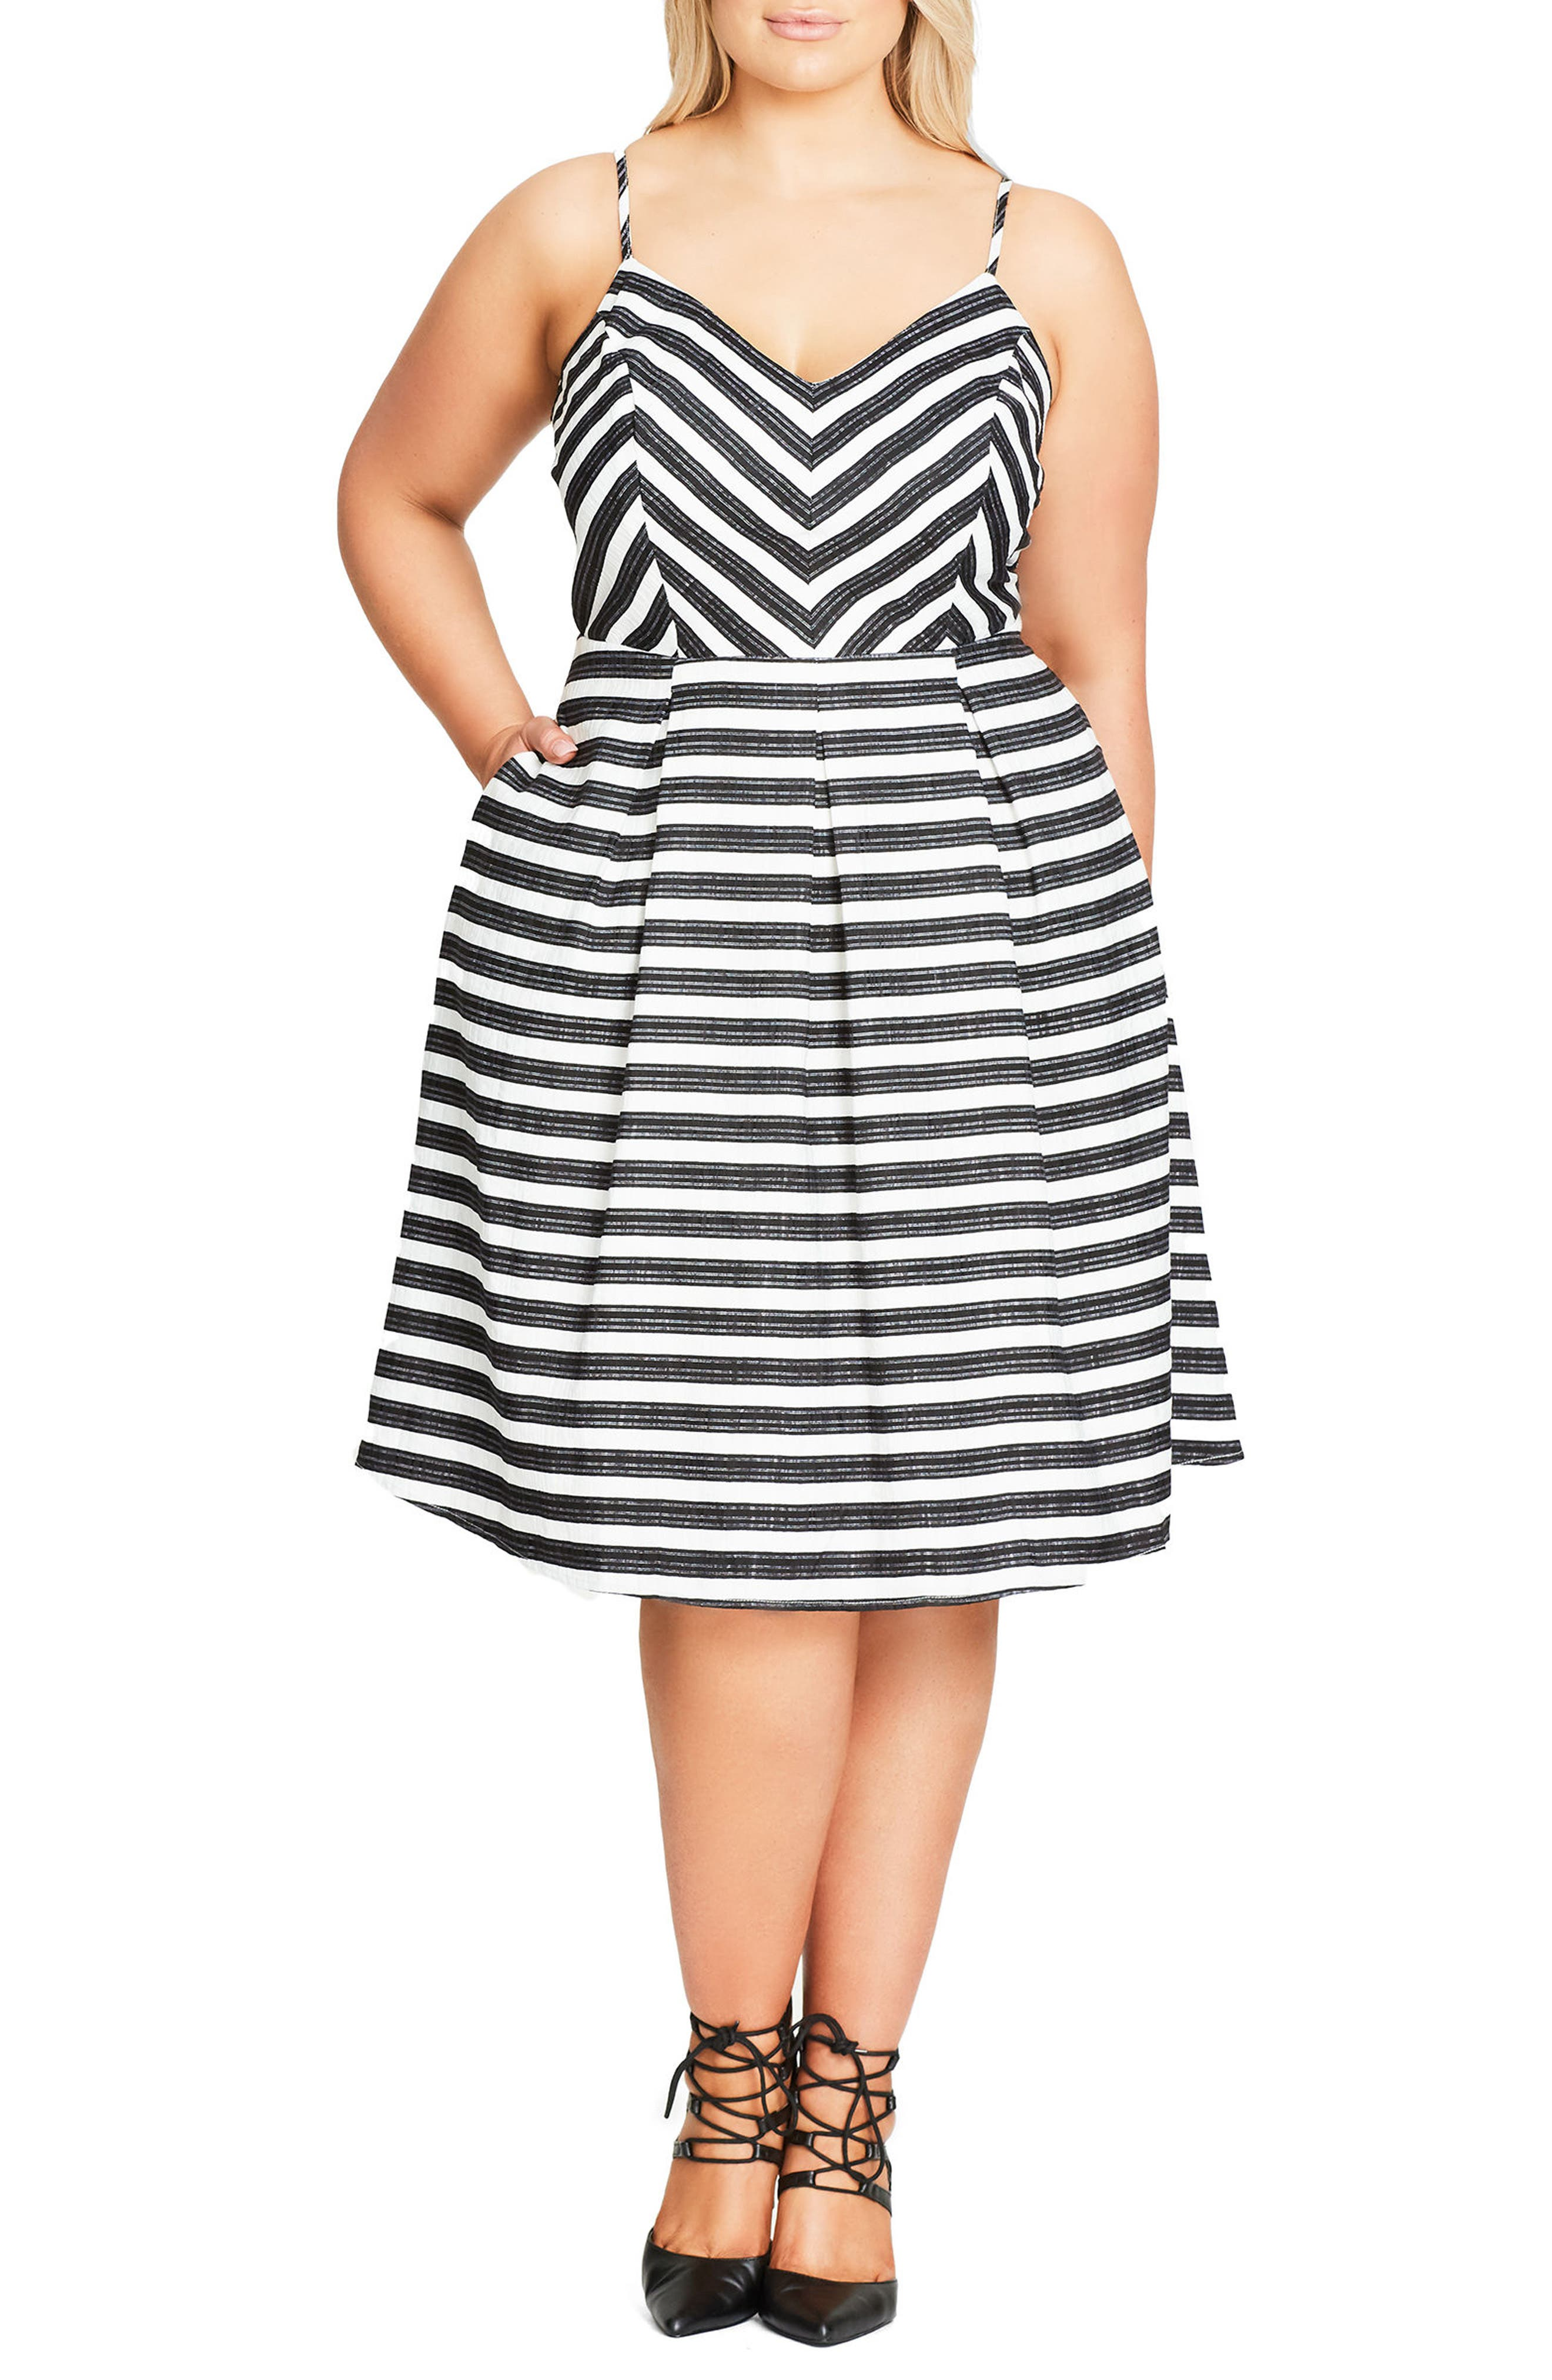 City Chic Marilyn Stripe Fit & Flare Sundress (Plus Size)